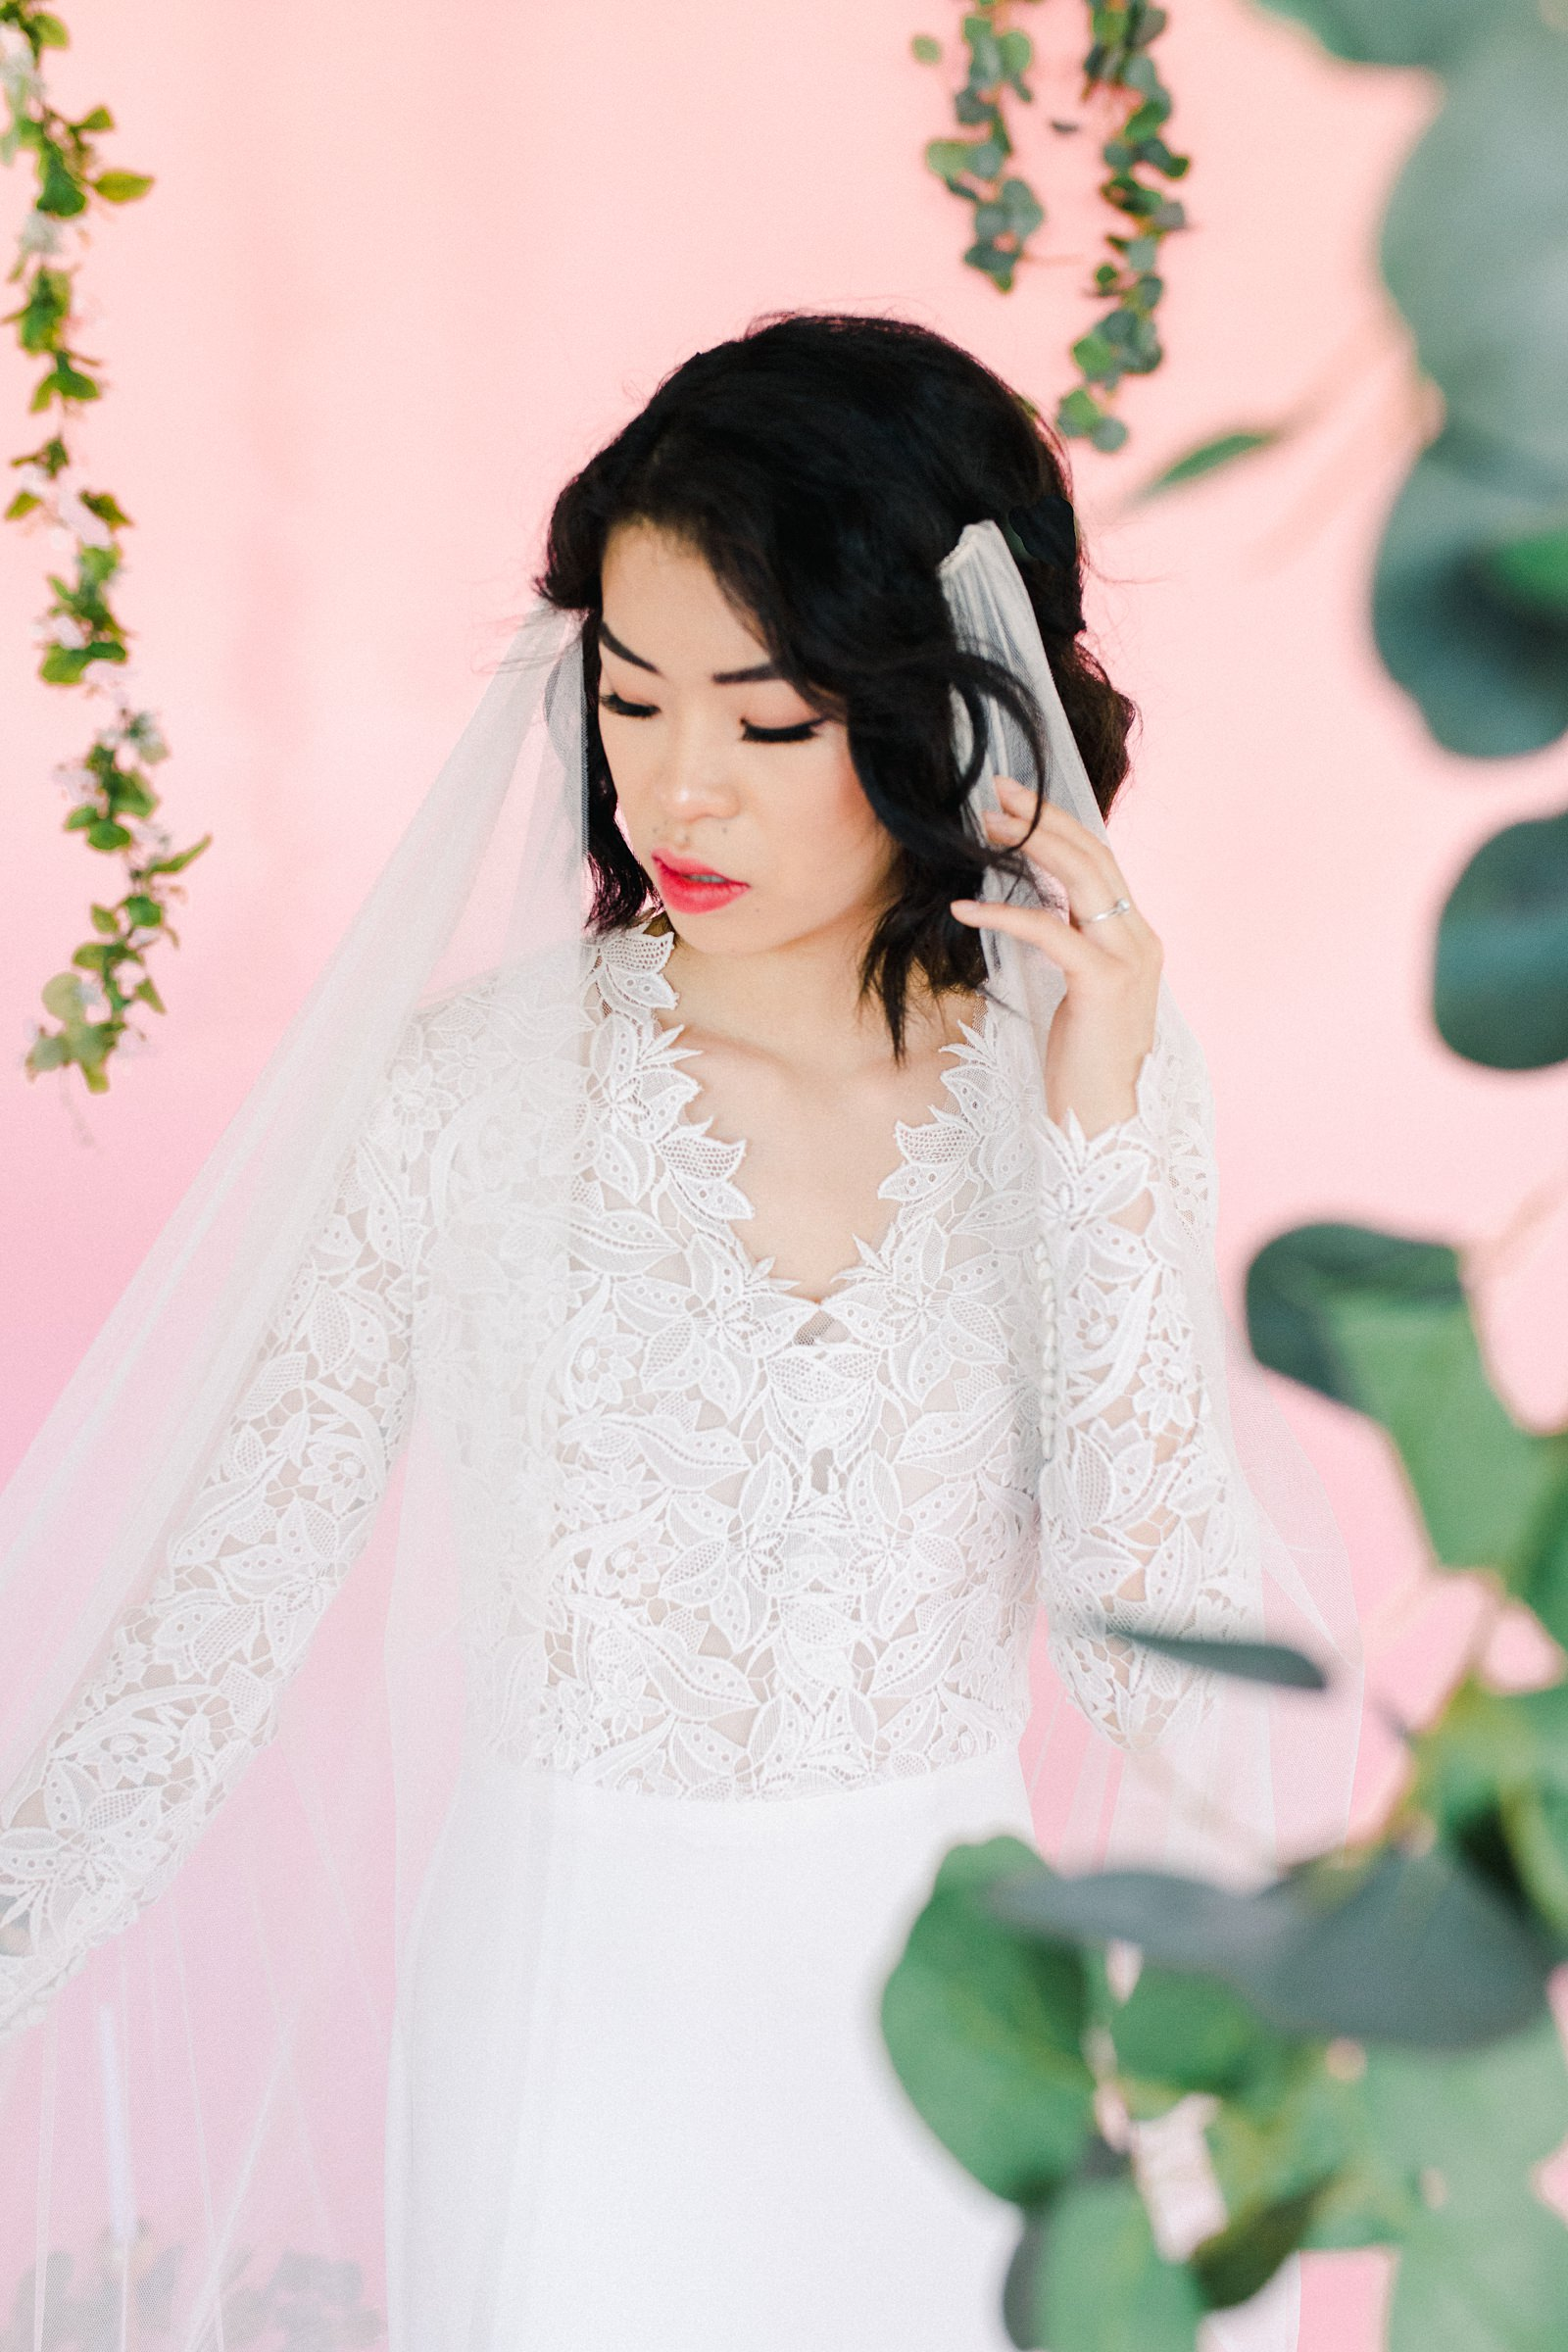 Utah wedding photography inspiration, Lazaro lace v-neck wedding dress with vintage lace and long sleeves, draped long flowy veil, short wedding hairstyle for bride